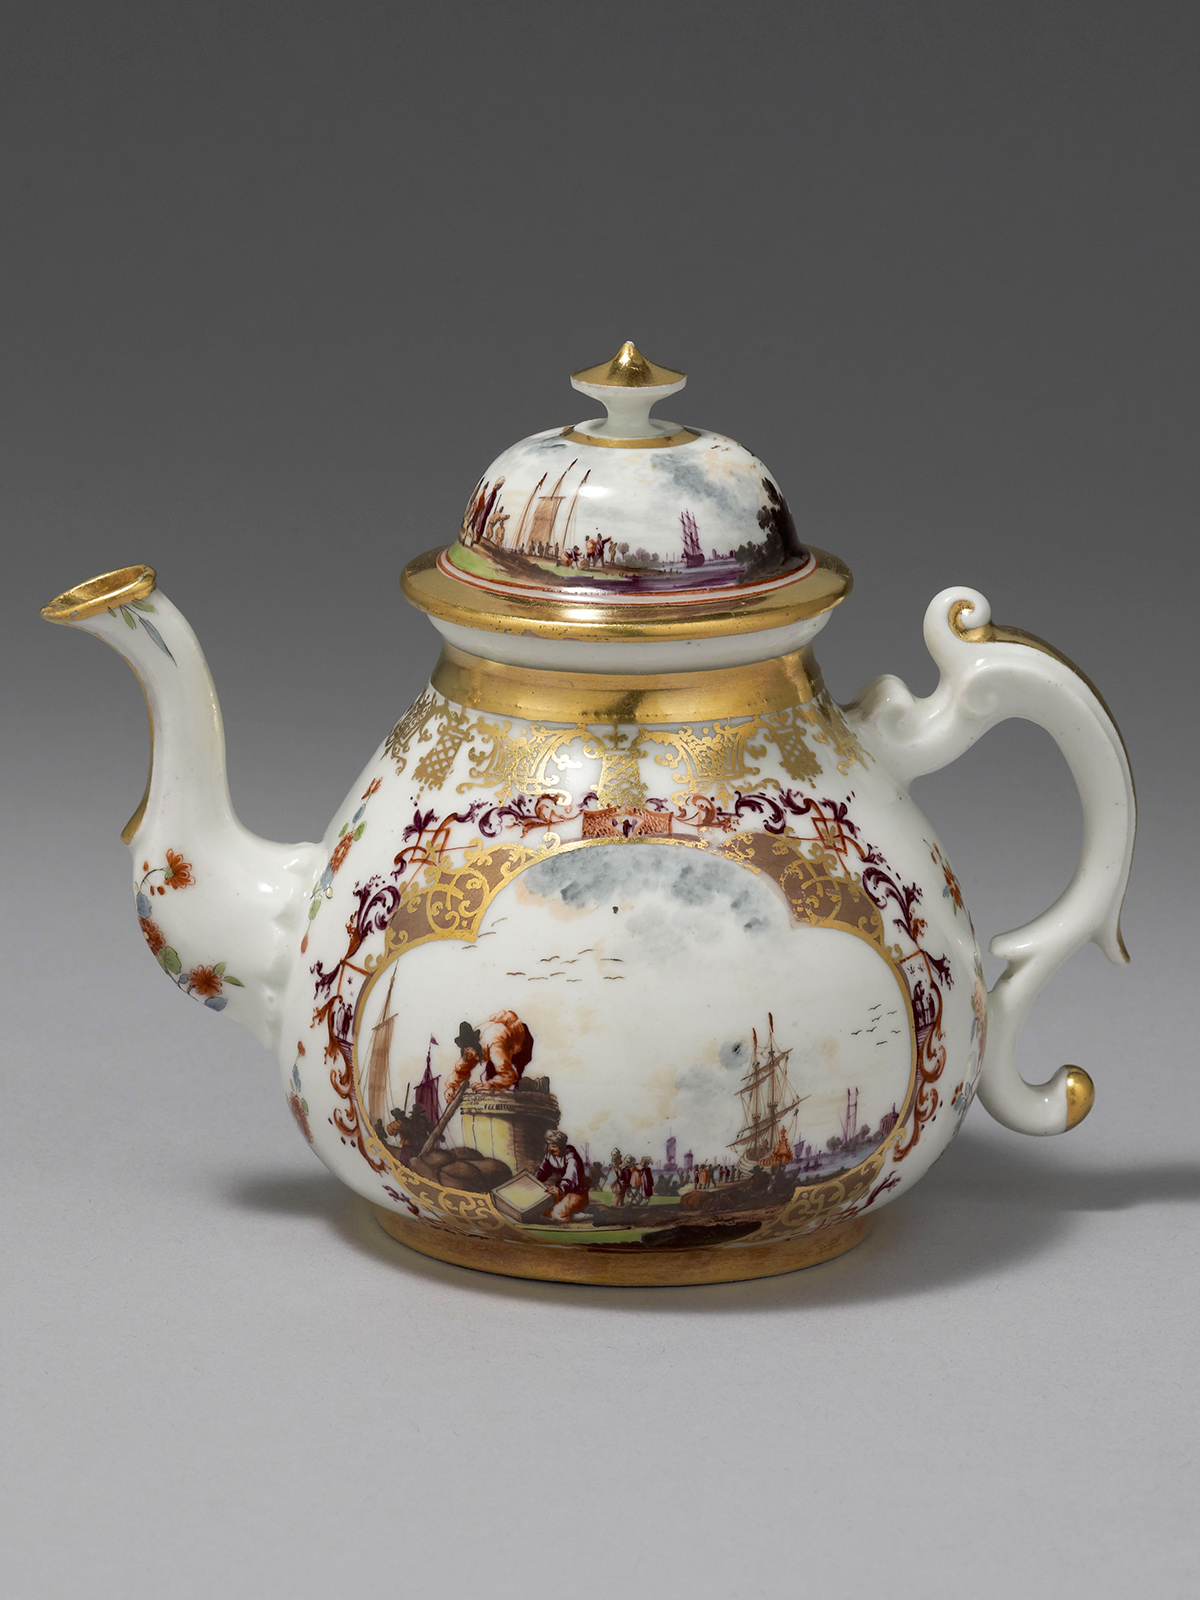 An extremely fine and Important Meissen Teapot and Cover